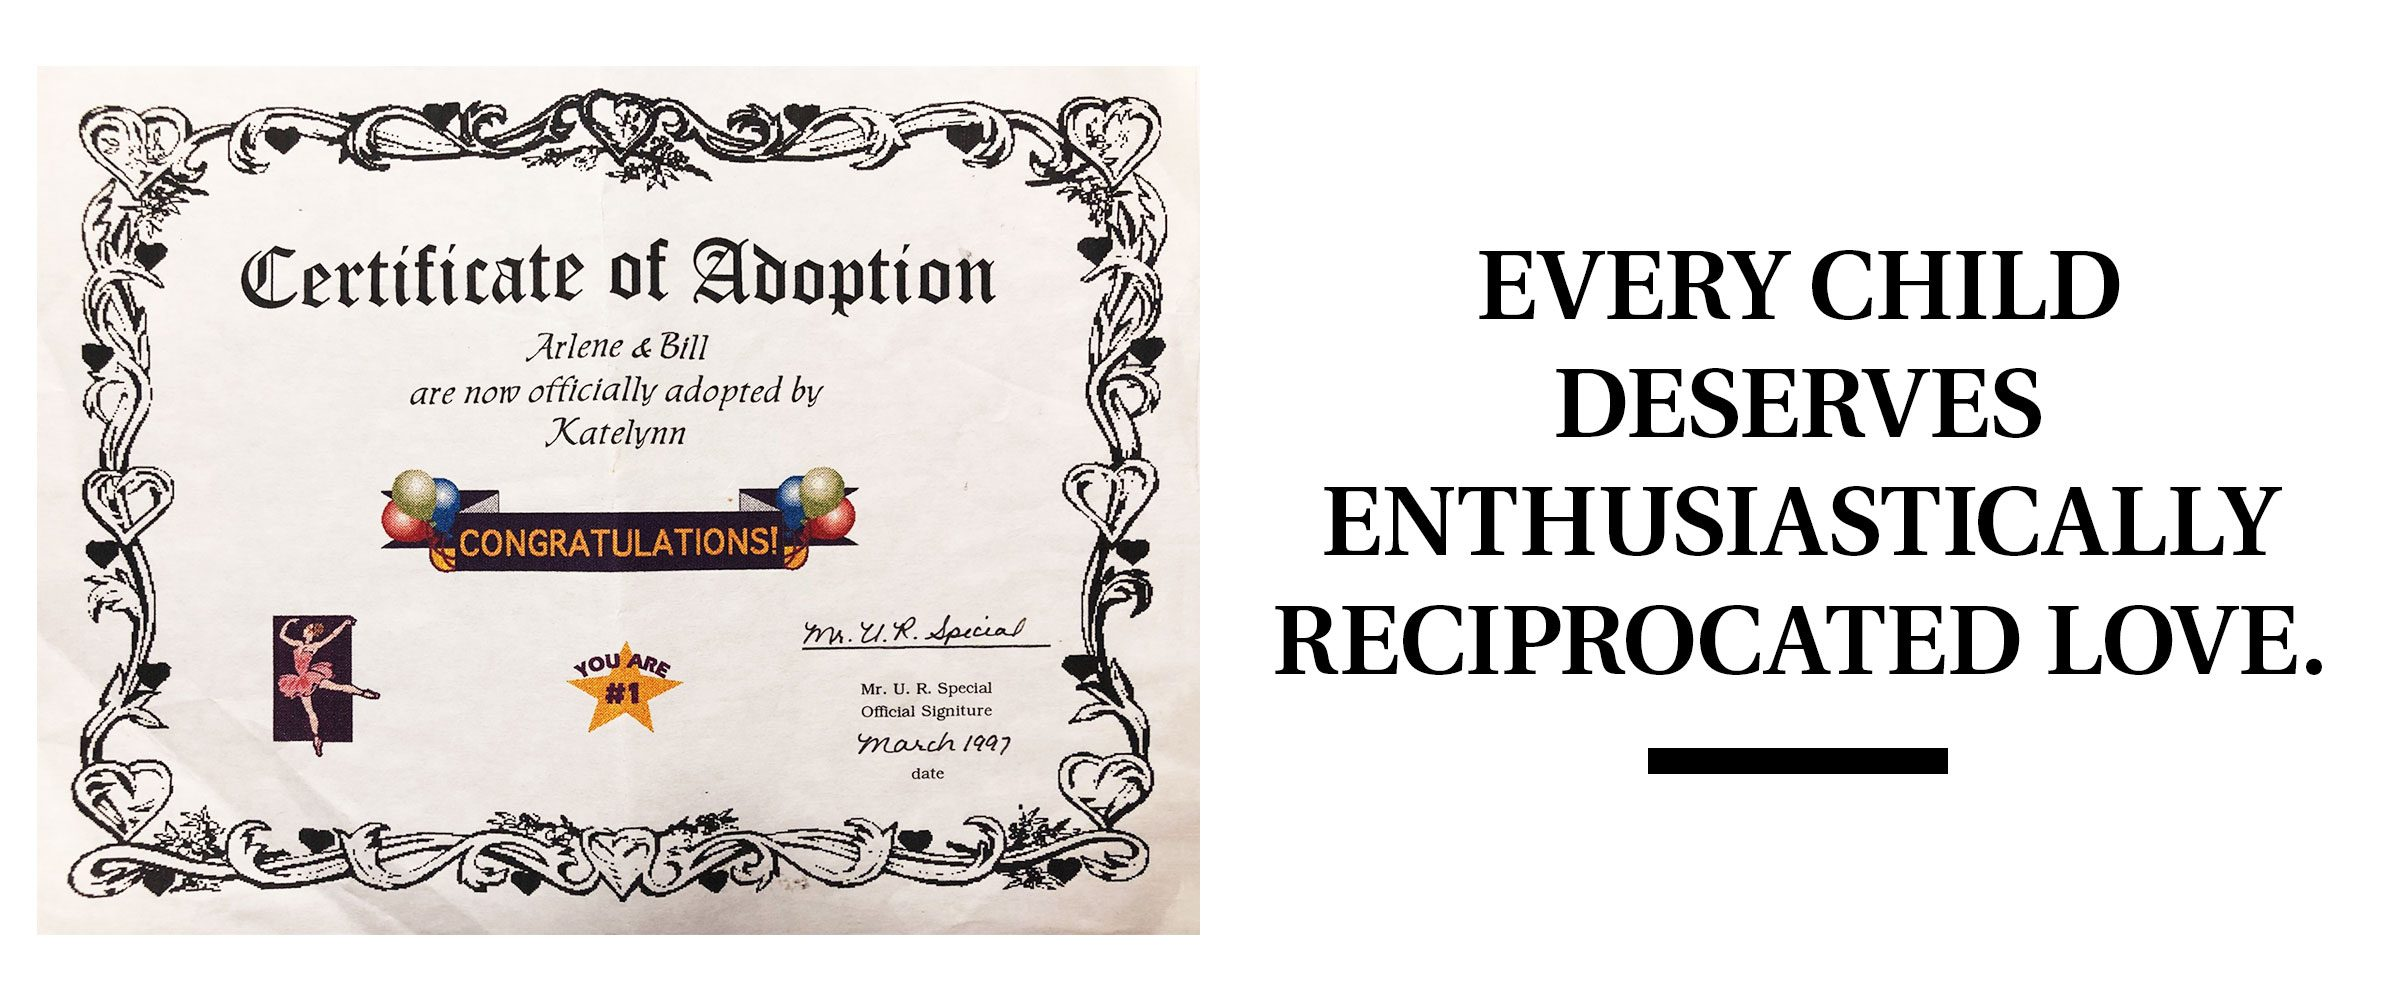 """adoption certificate and pull quote text: """"Every child deserves enthusiastically reciprocated love."""""""